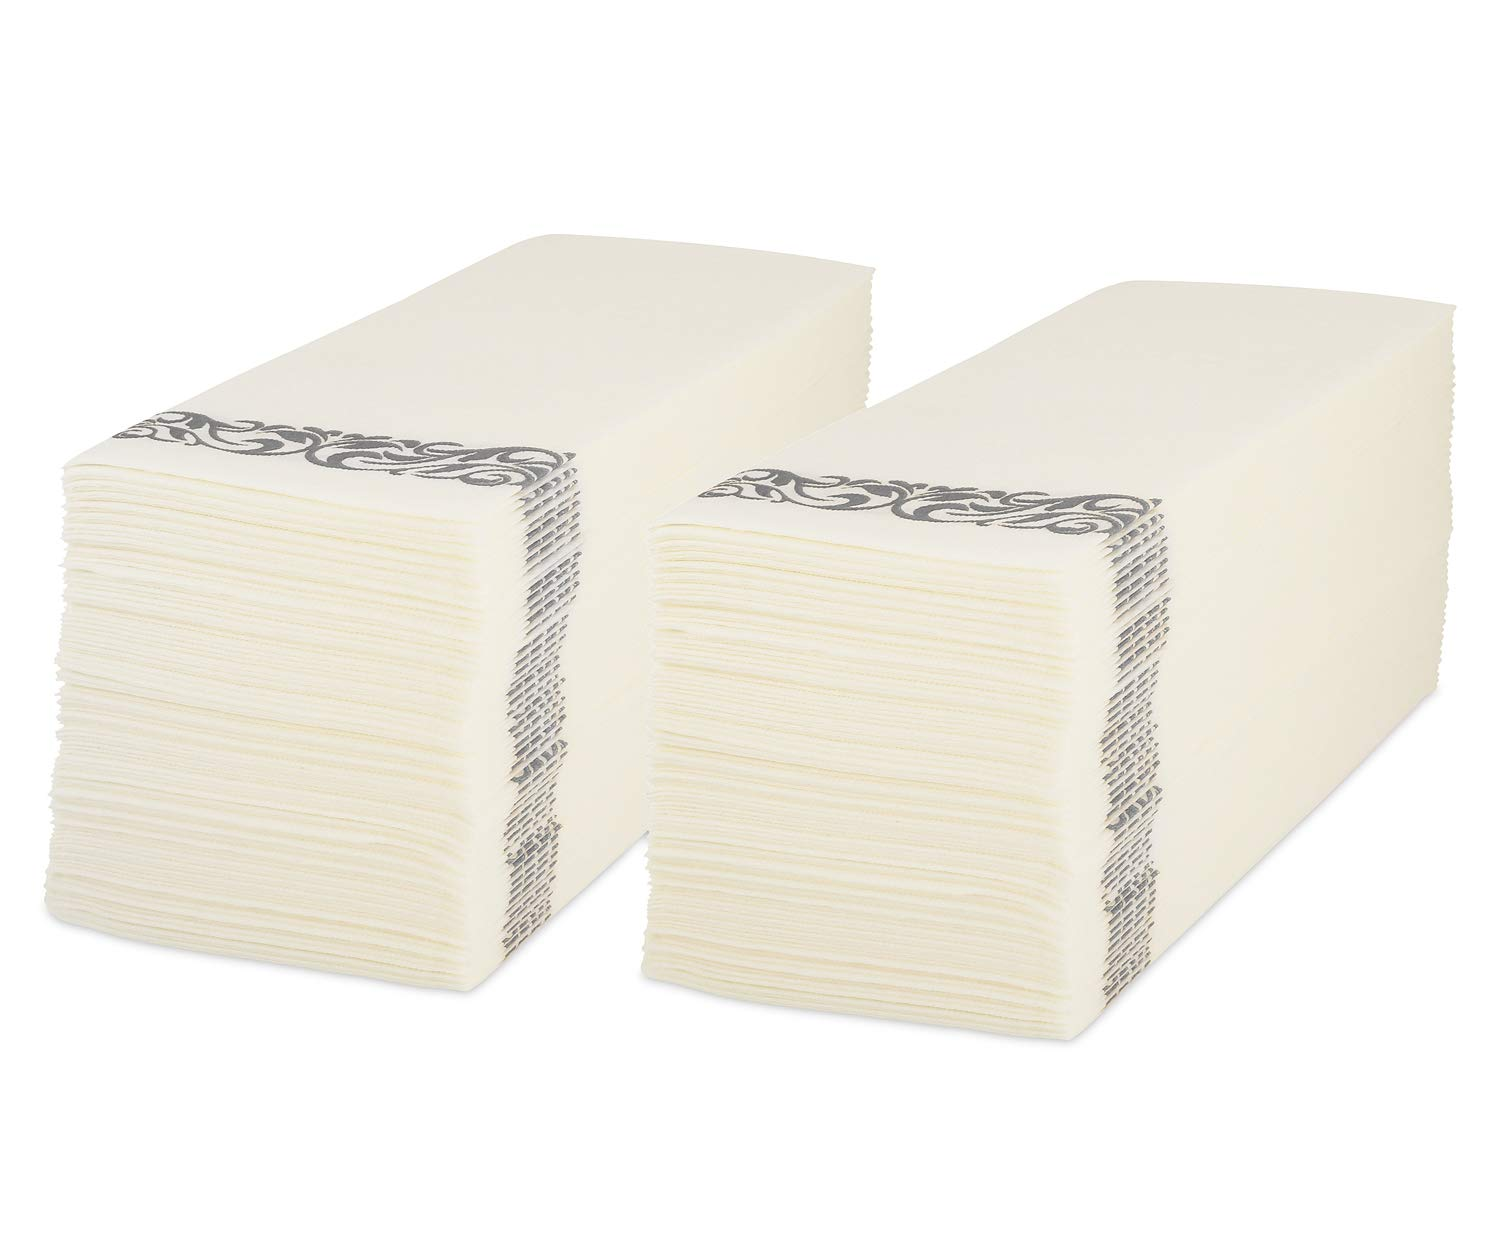 Decorative Disposable Linen Feel Paper Hand Towels | Luxury Dinner, Kitchen, Bathroom & Guest Room Napkins | Ultra-Soft & Absorbent Party, Wedding & Special Event Guest towels | White & Silver | 100ct